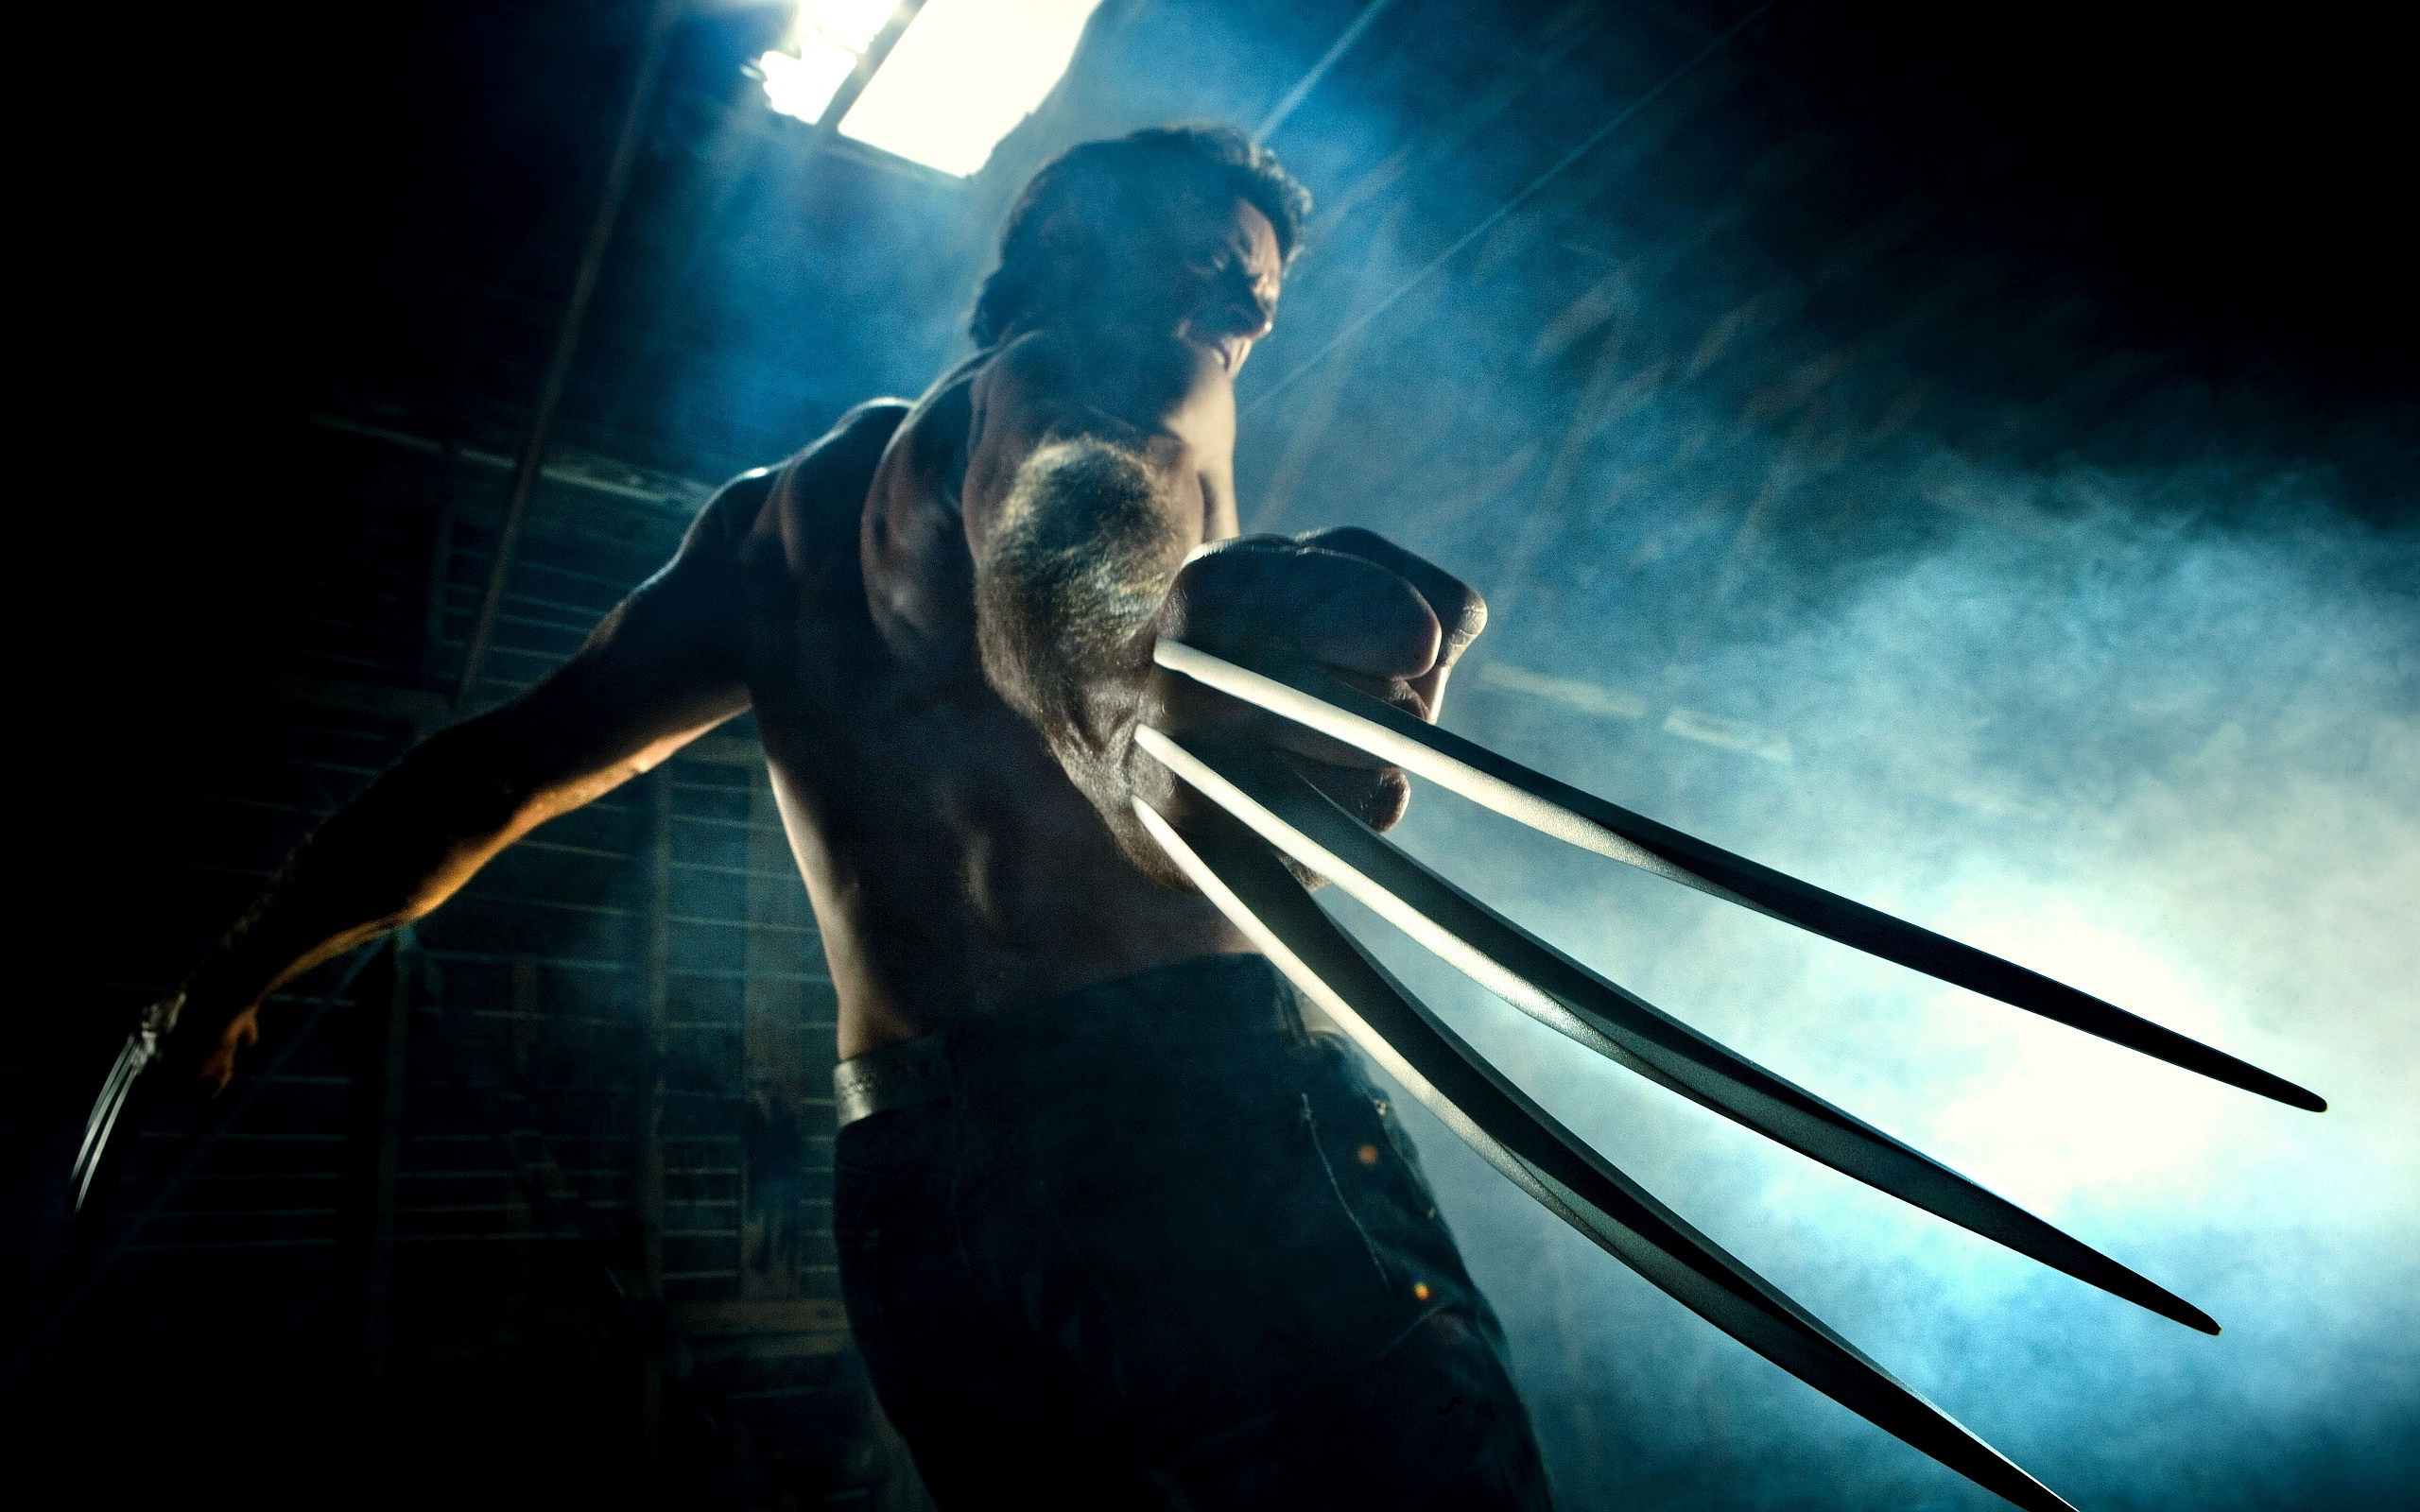 Rampage Movie Hd Wallpapers Download 1080p: Wolverine HD Wallpapers For Desktop Download